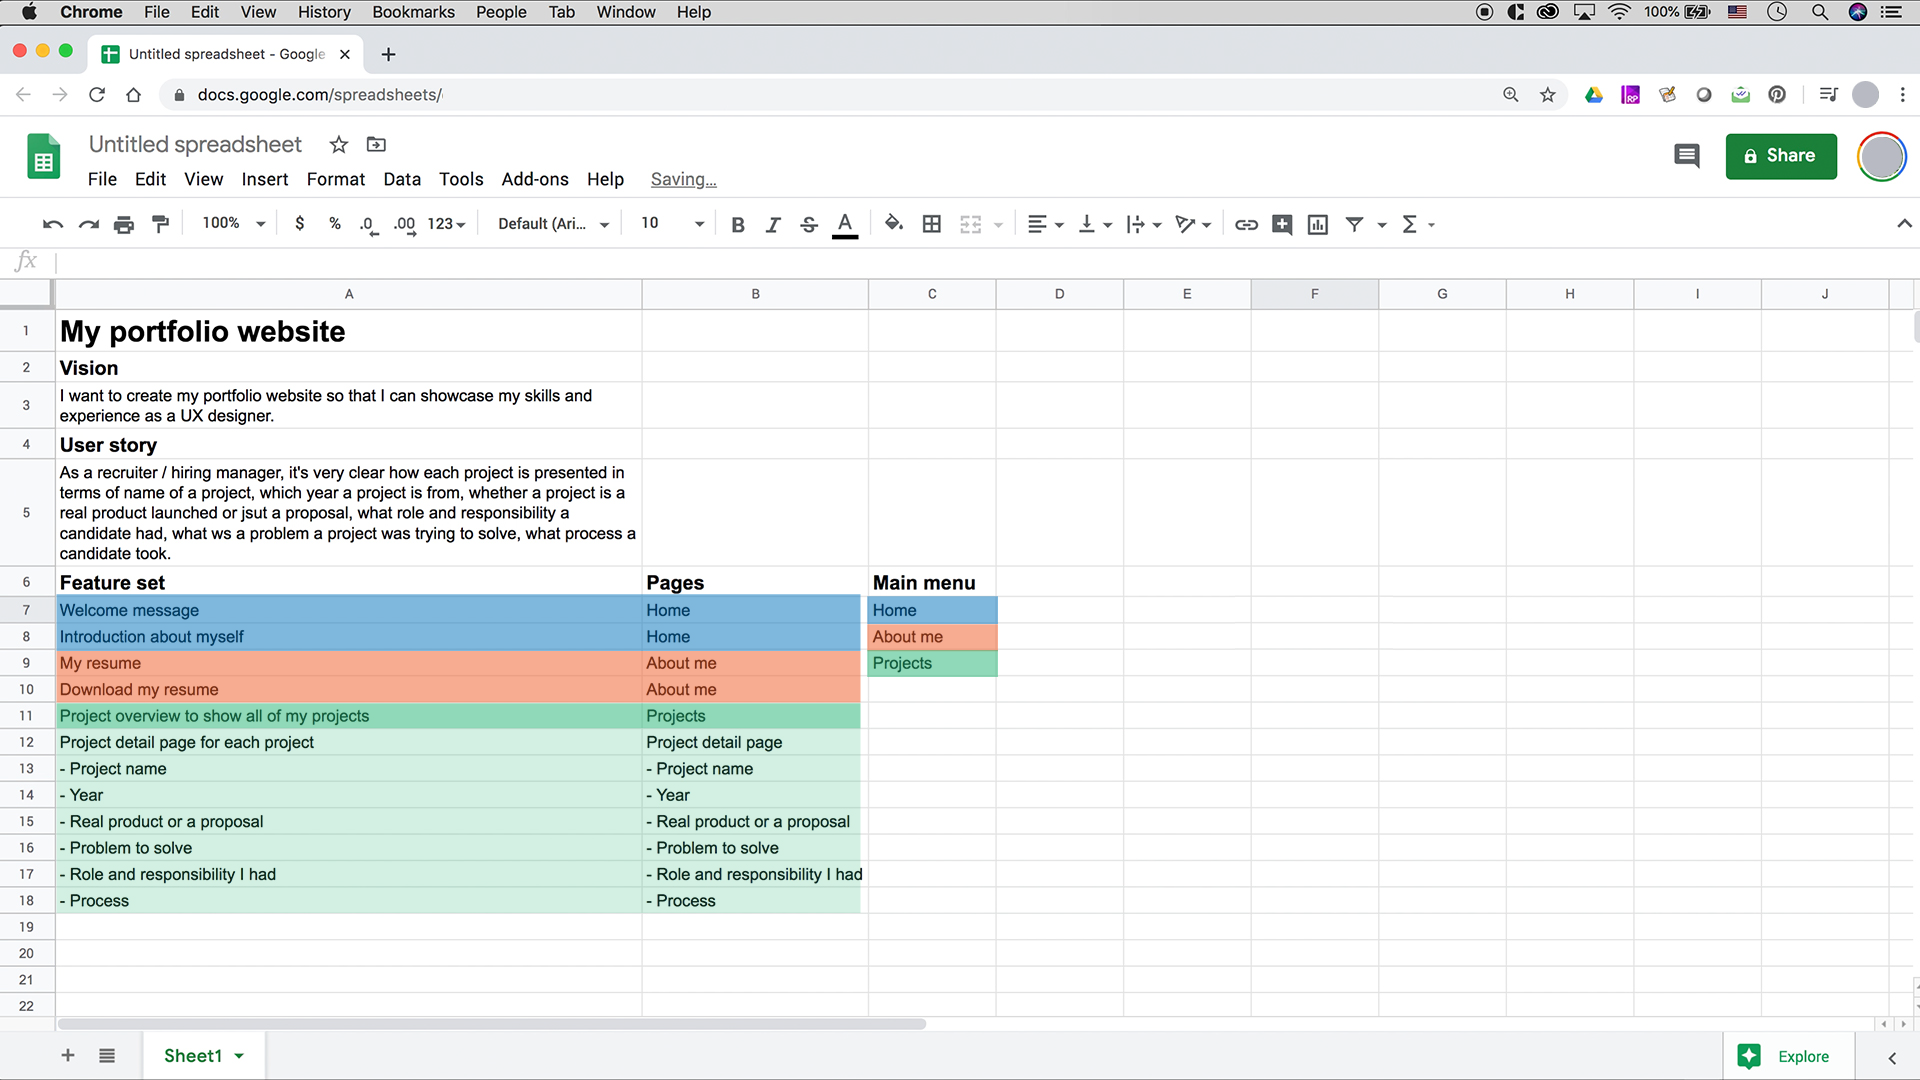 A screenshot of Google Sheets showing main menu and feature set for each page, color-coded.